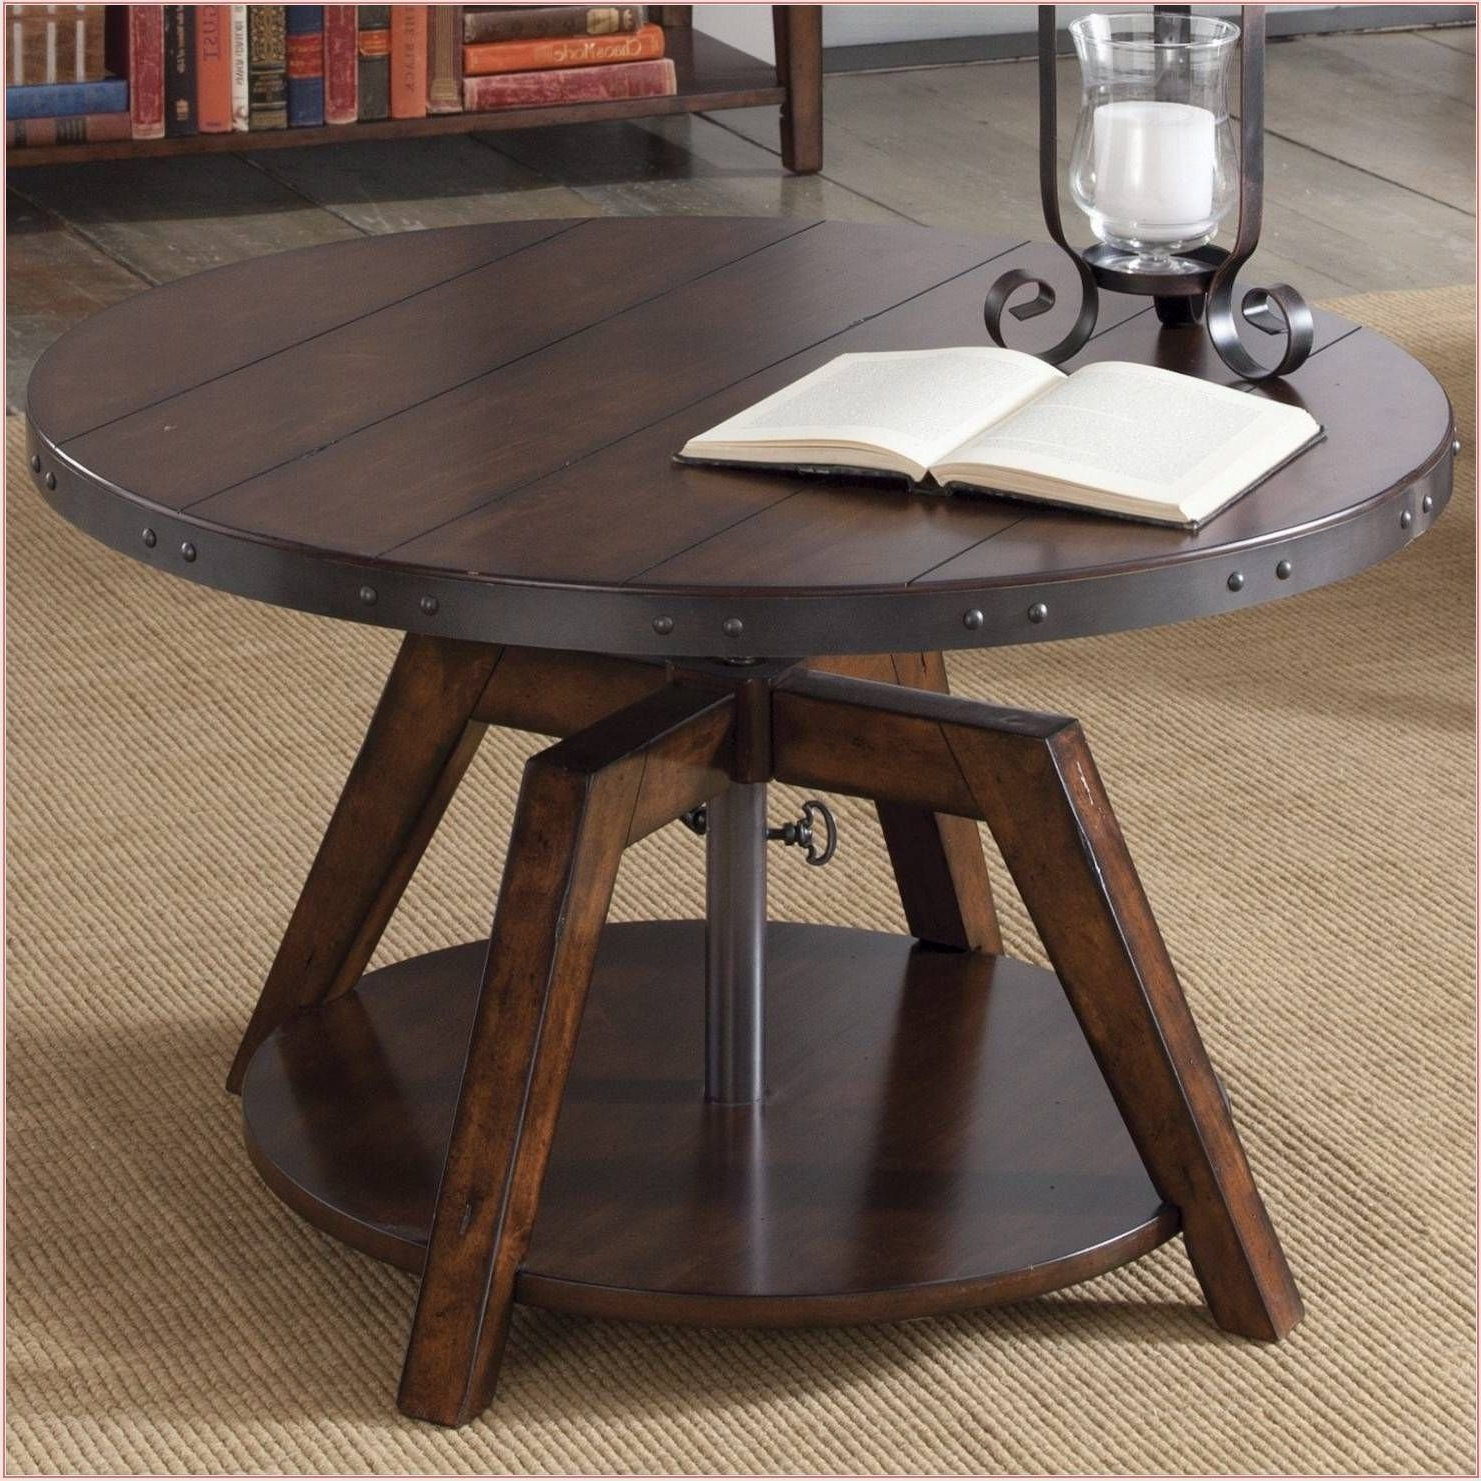 Well Known 4 Seater Round Wooden Dining Tables With Chrome Legs Throughout 50+ Amazing Convertible Coffee Table To Dining Table (View 20 of 30)